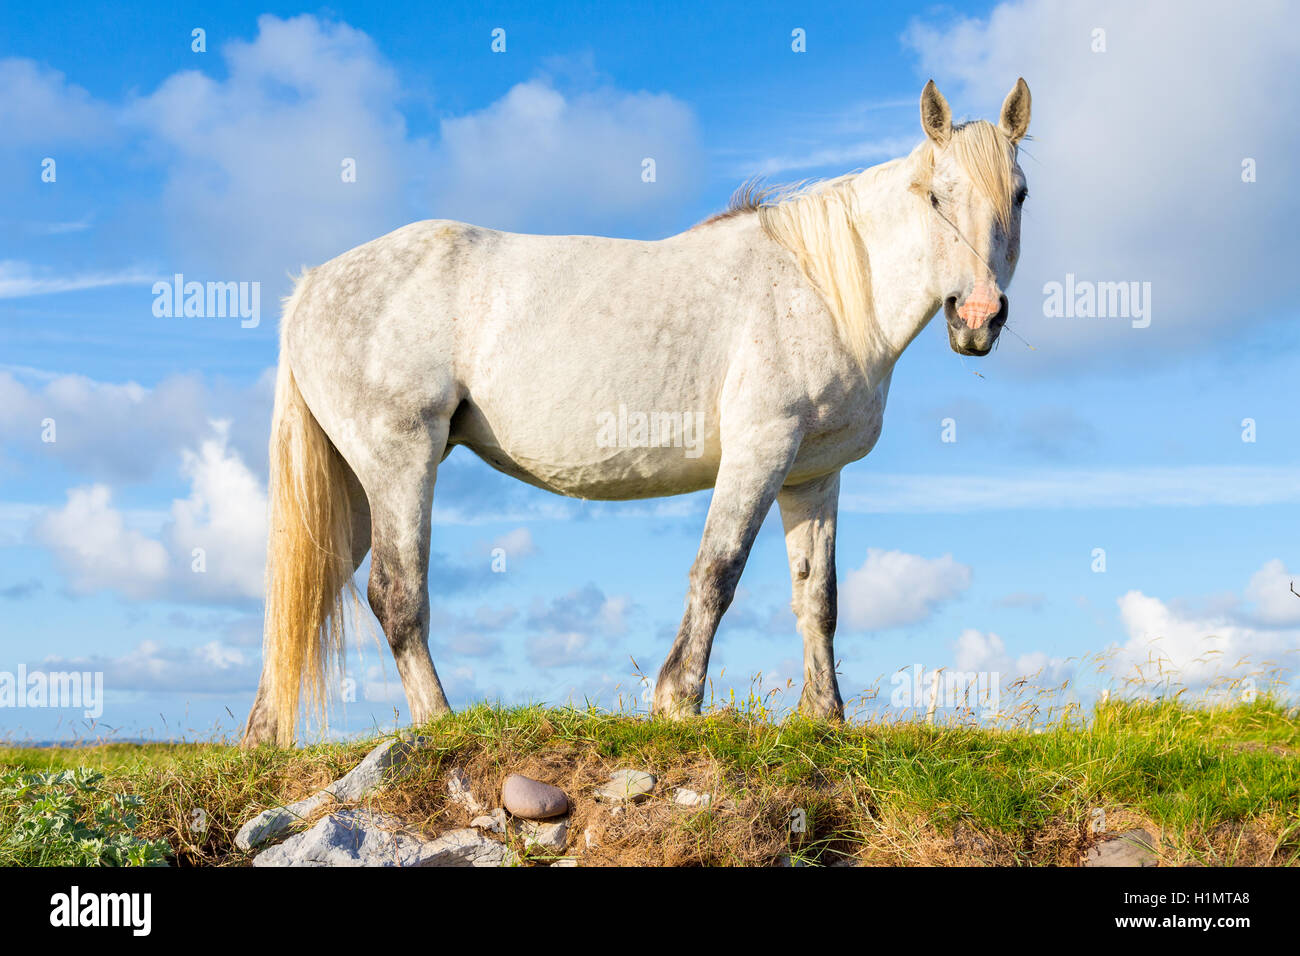 A gelding standing at profile in a field, looks at the camera. - Stock Image